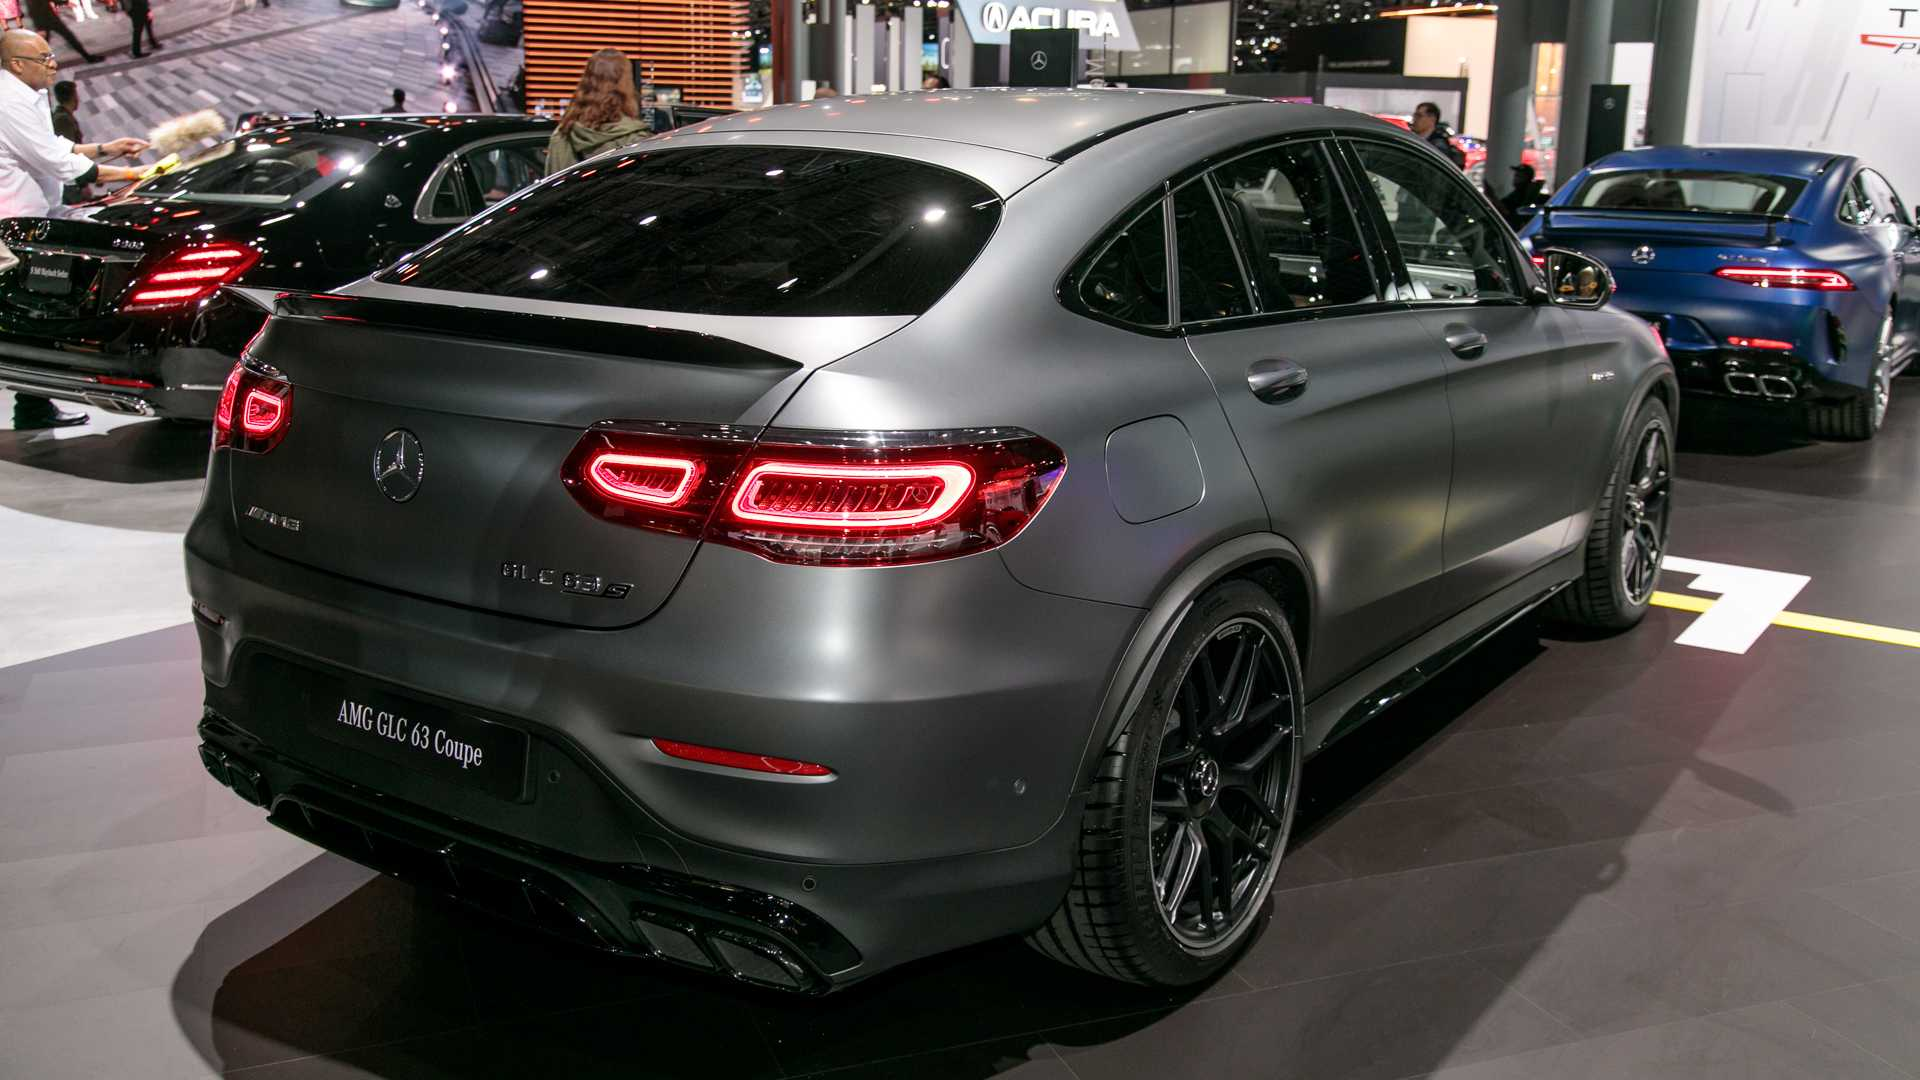 Mercedes-AMG GLC 63, 63 Coupe Introduce Their Ample Power ...